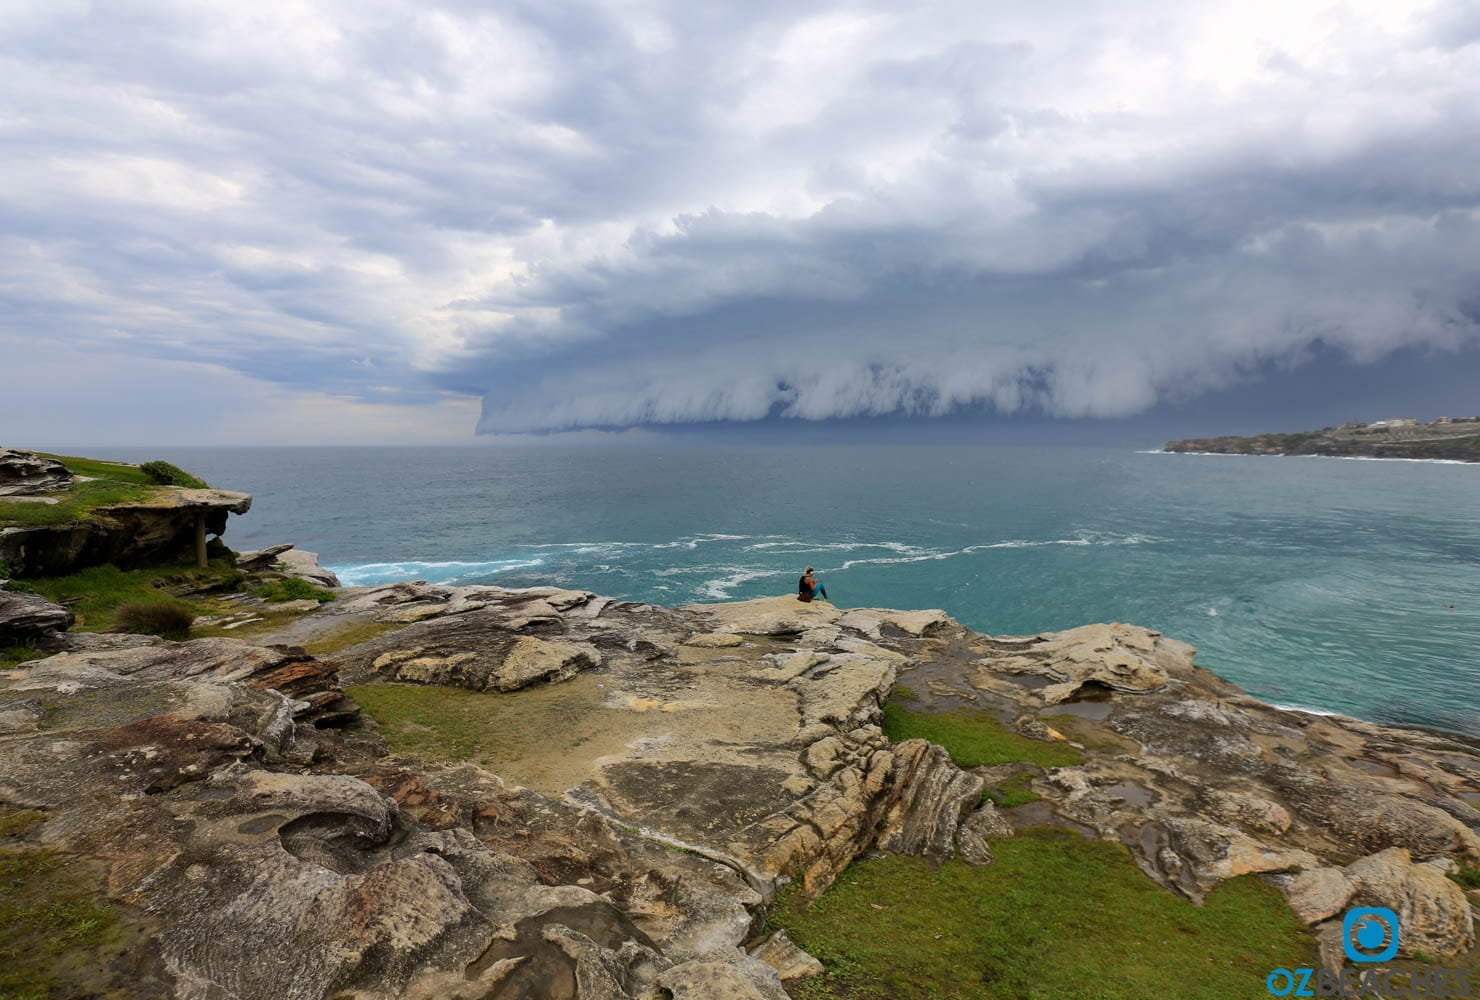 Supercell storm approaching Tamarama Beach